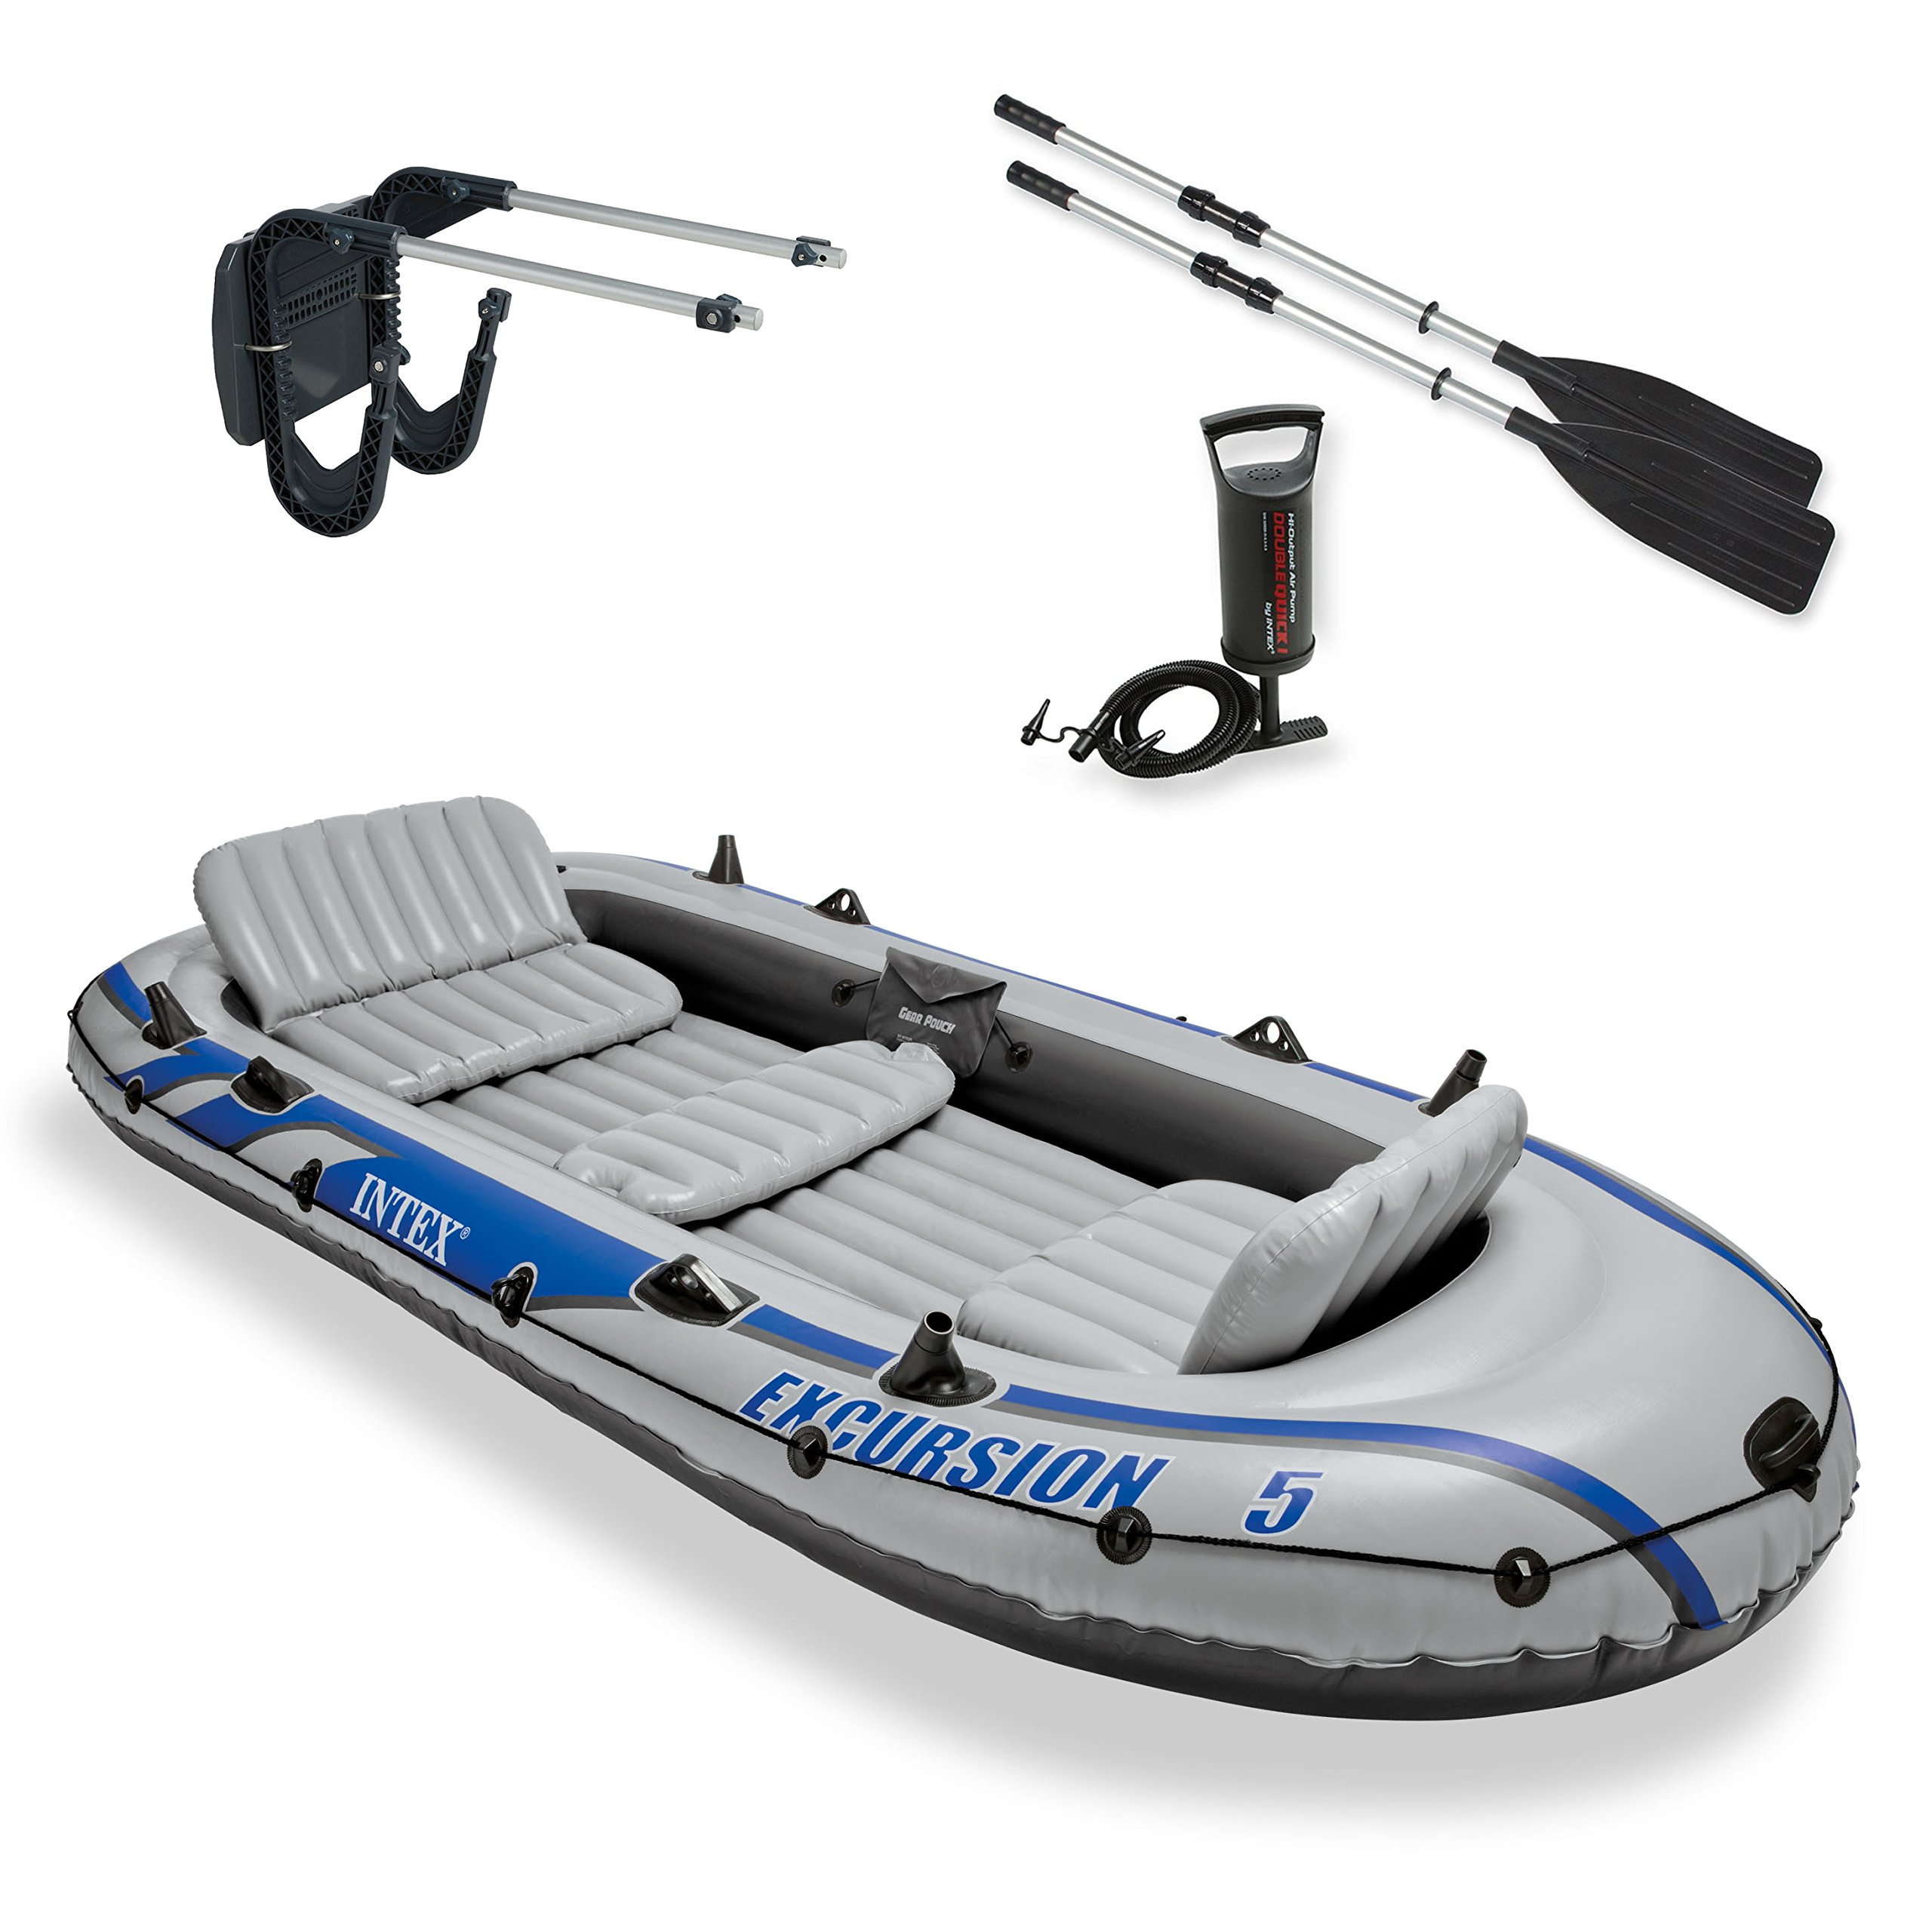 Intex Excursion 5 Inflatable Rafting and Fishing Boat with Oars + Motor Mount by INTEX